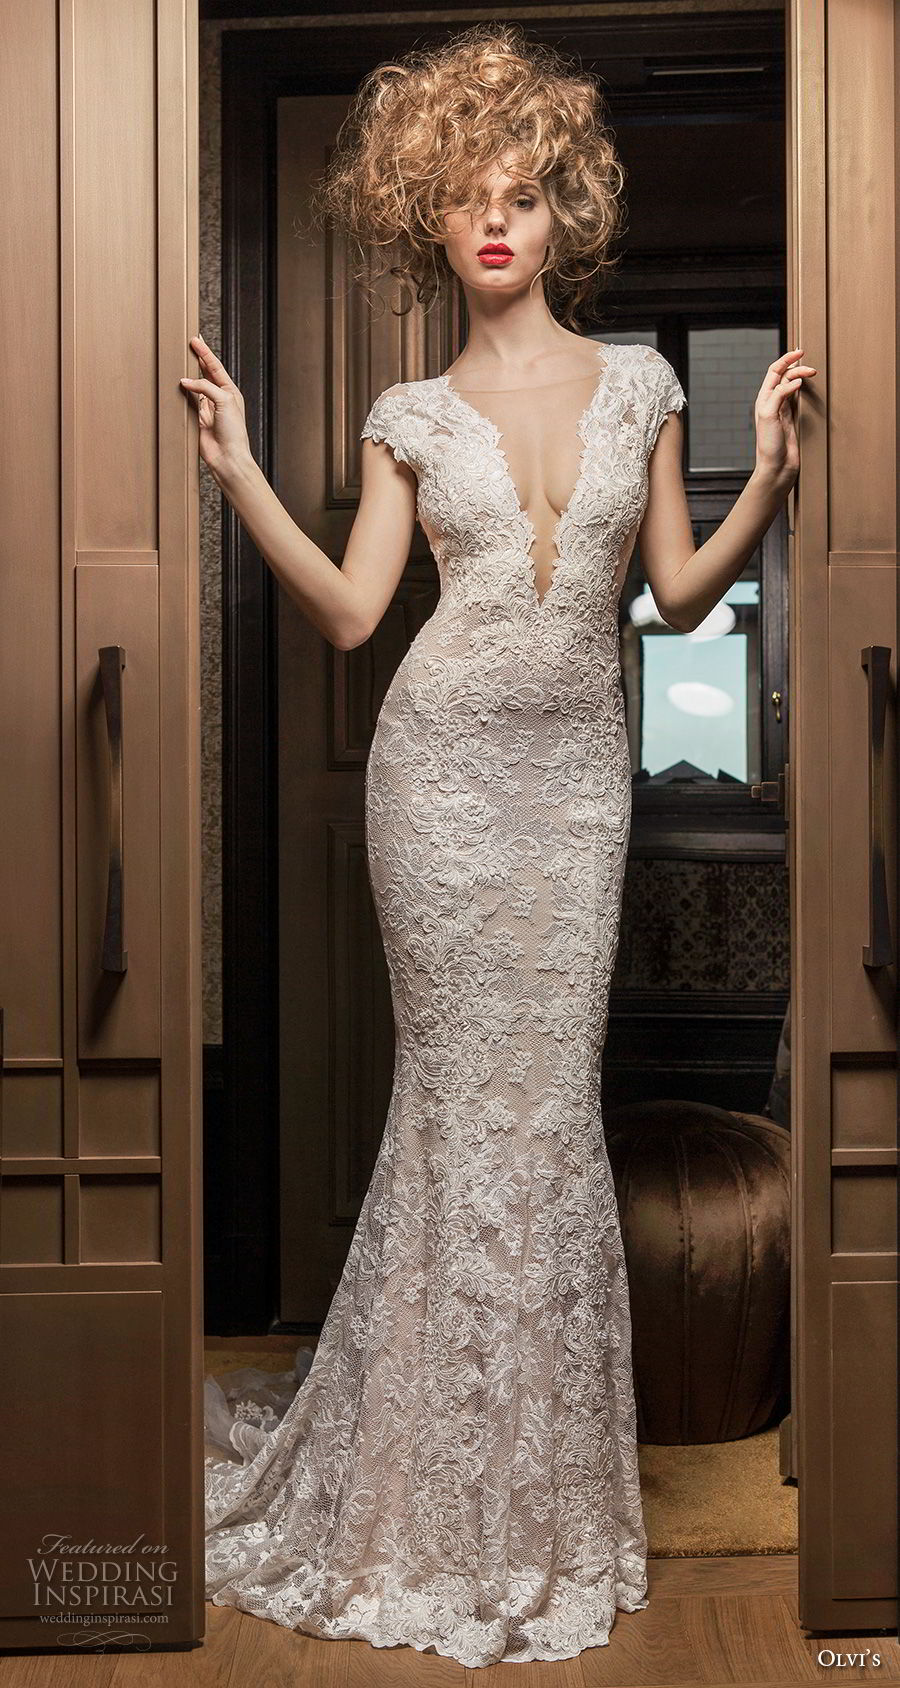 olvi 2019 bridal cap sleeves deep plunging v neck full embellishment elegant fit and flare wedding dress open v back chapel train (10) mv